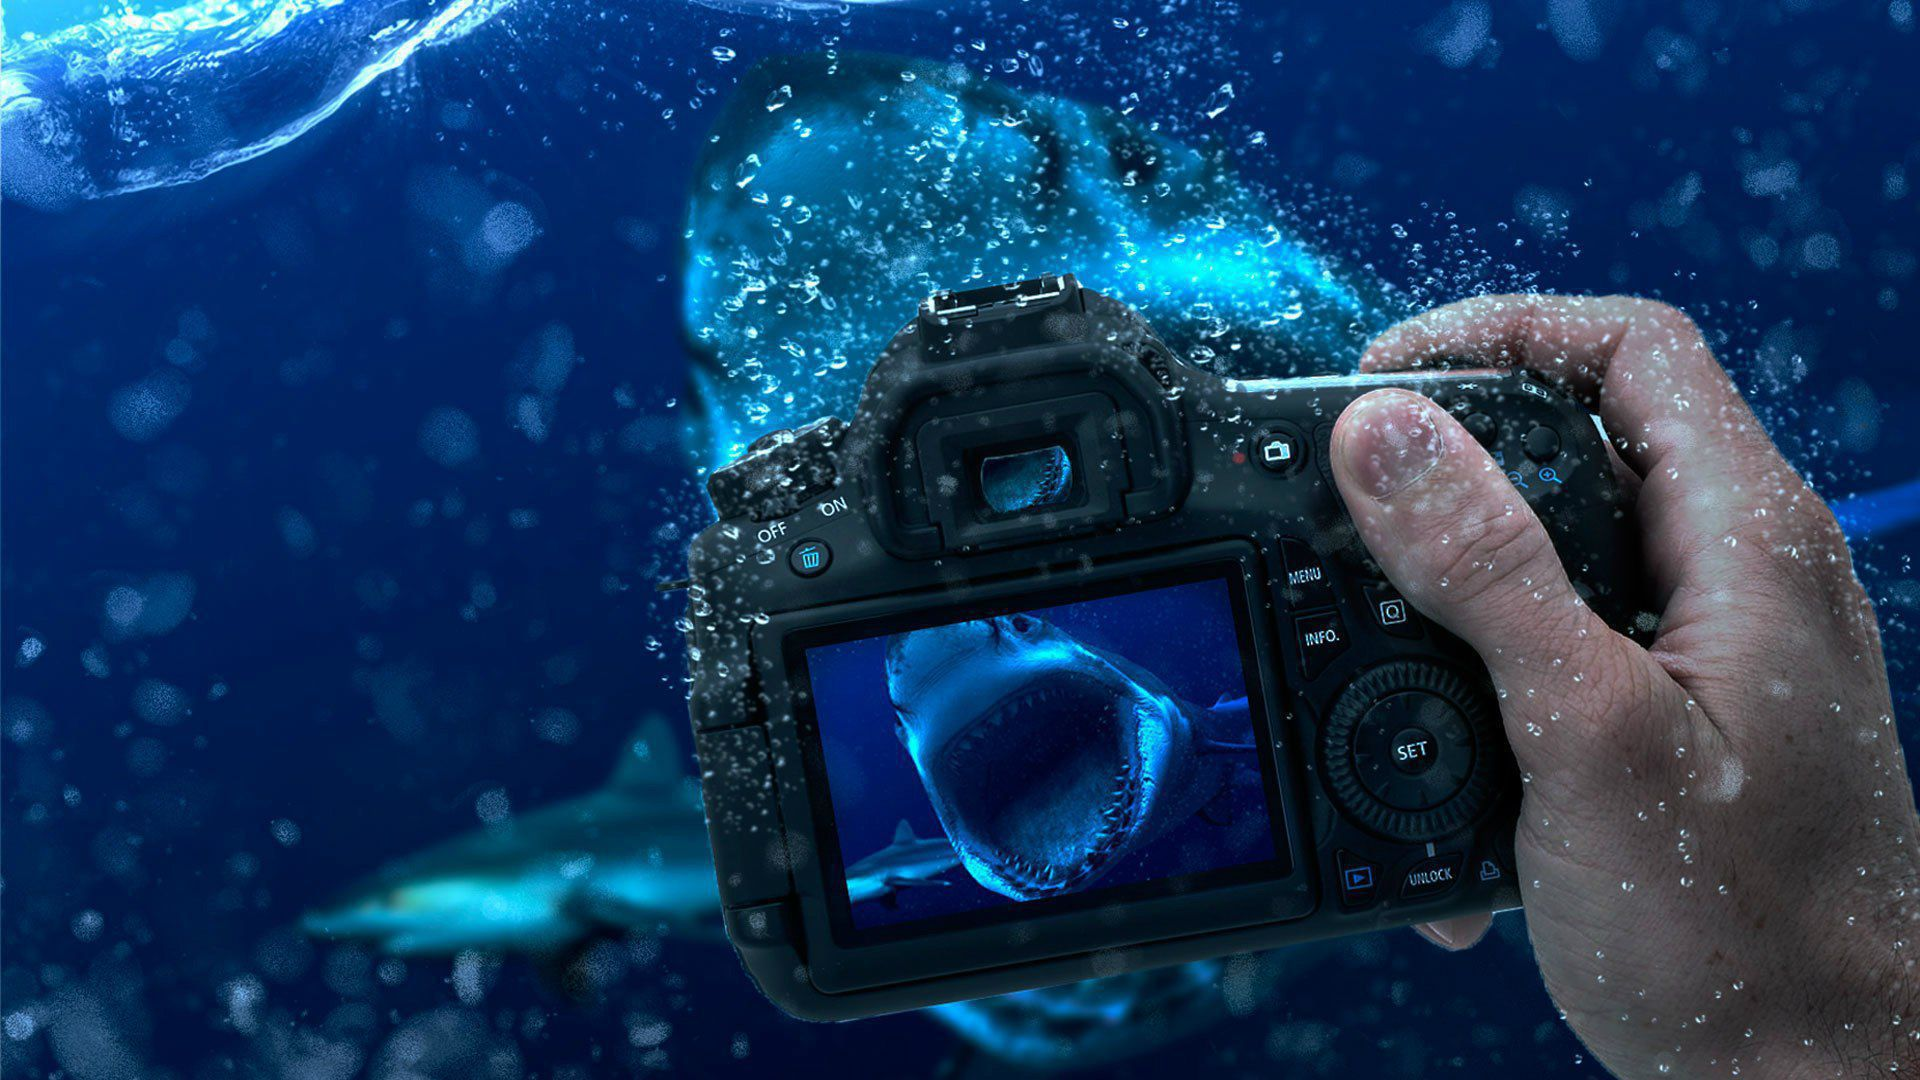 Camera Wallpapers Backgrounds